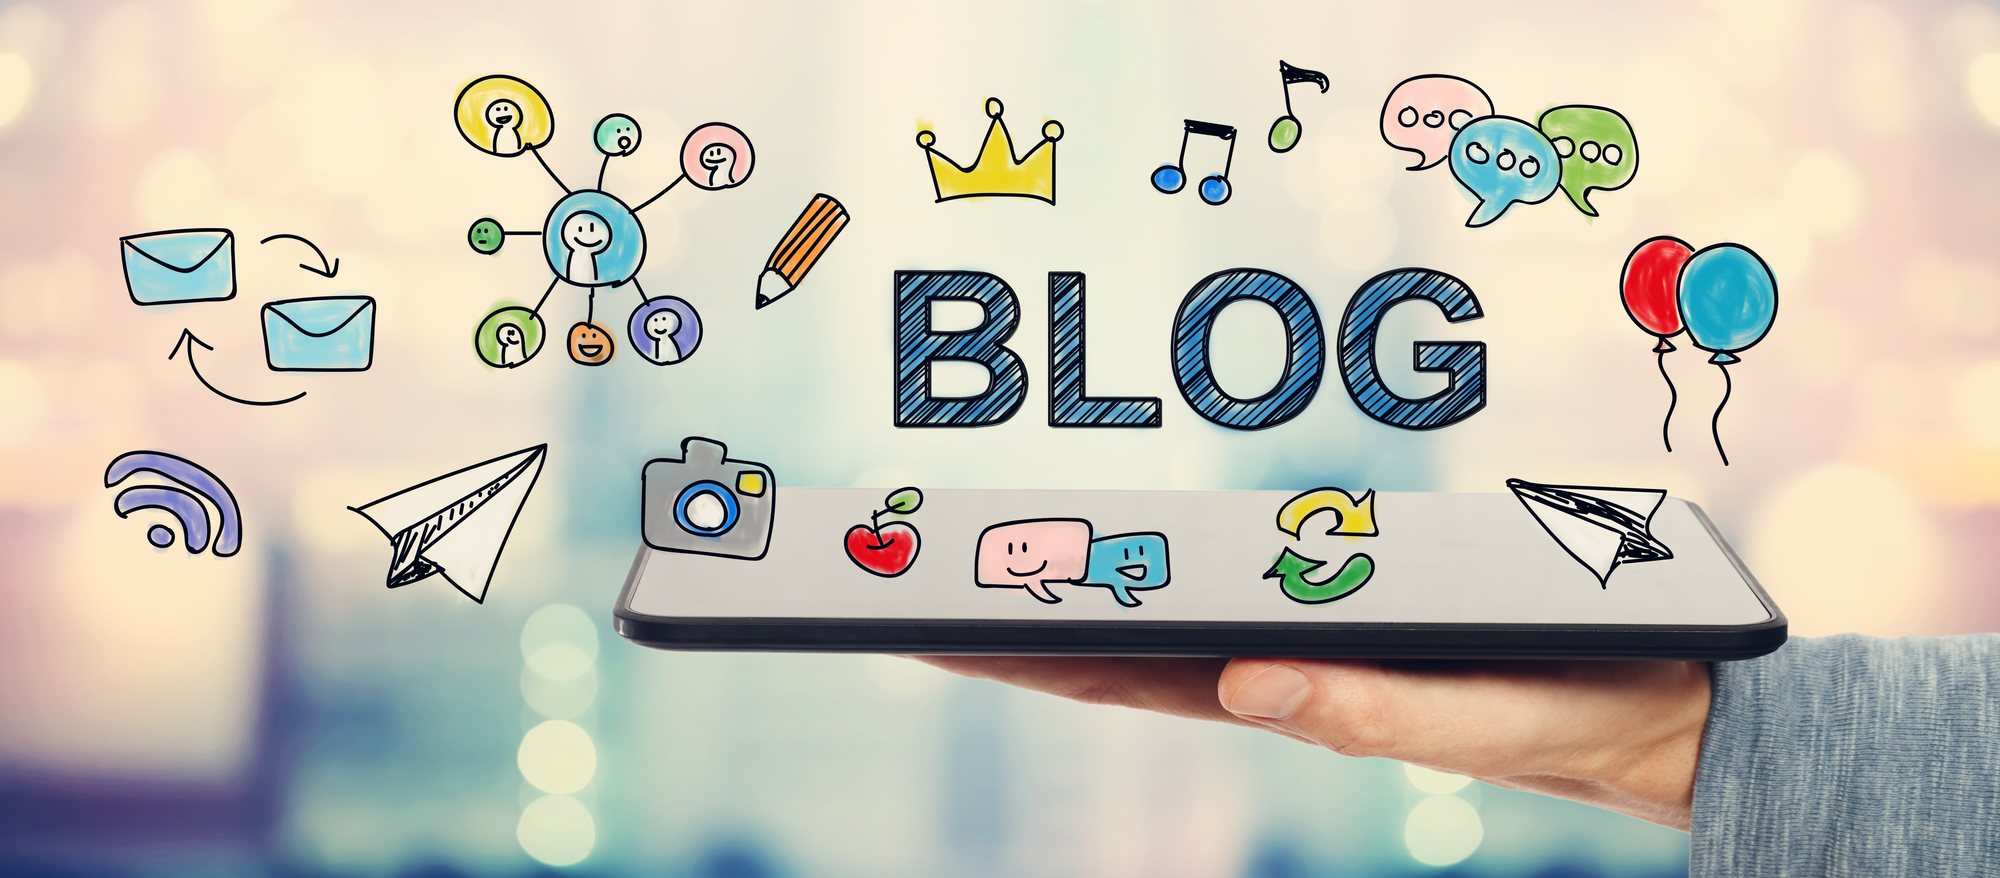 5 Key Tips for Small Business Blogging